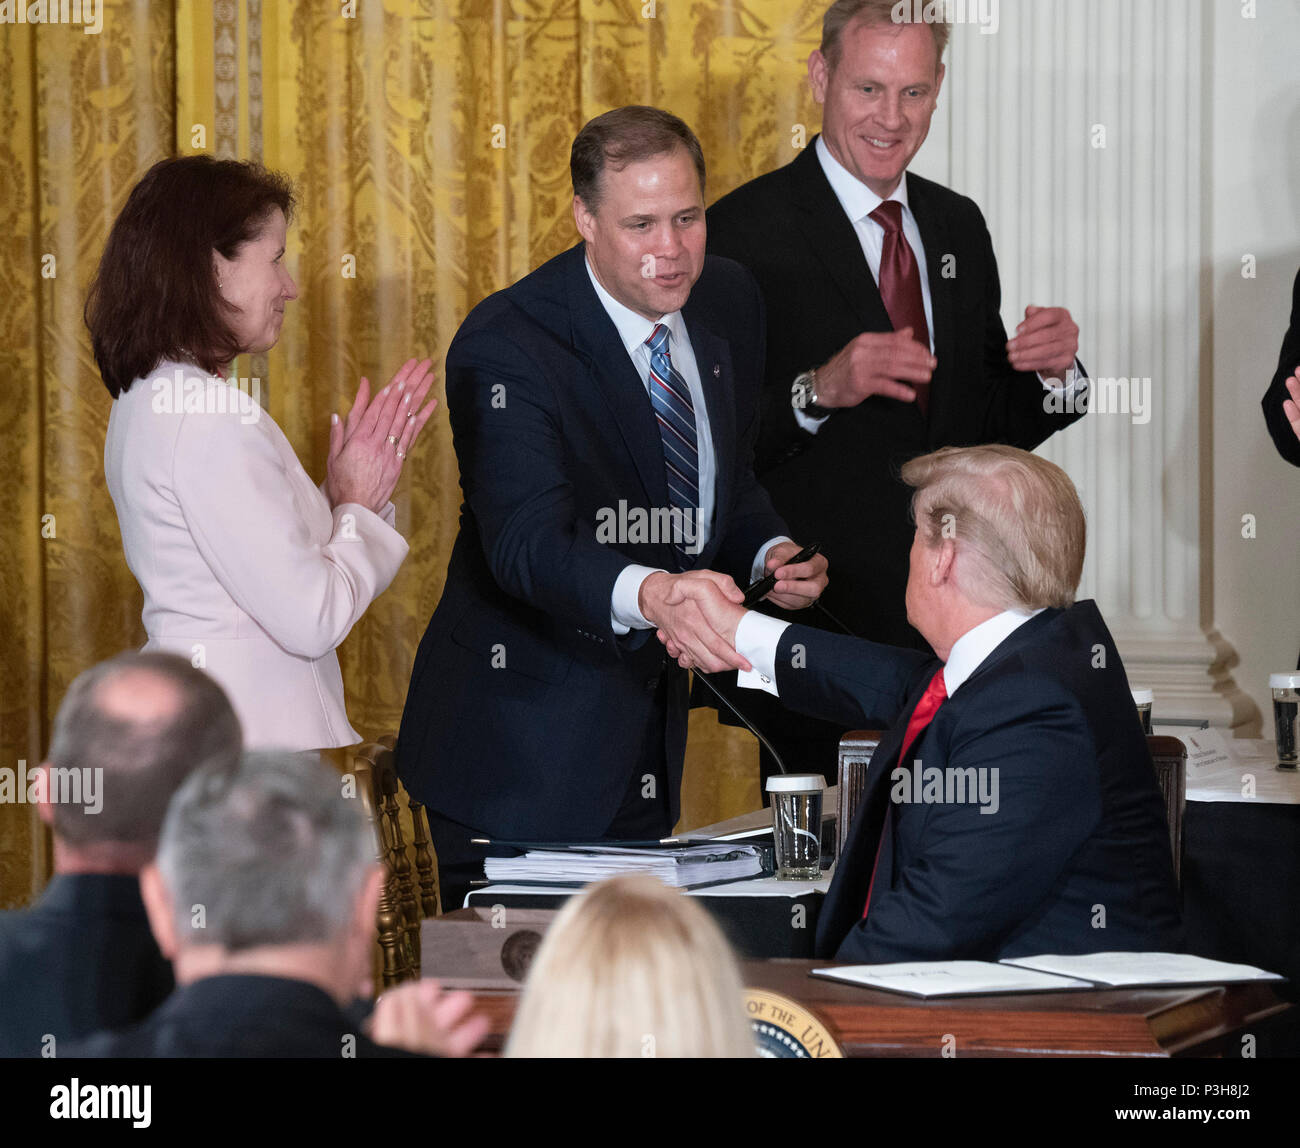 United States President Donald J. Trump hands off the pen used to sign Space Policy Directive 3 to Jim Bridenstine, administrator of the during a meeting with the National Space Council at The White House in Washington, DC, June 18, 2018. The directive addresses issues including monitoring of objects in orbit, providing that information to spacecraft operators to avoid collisions, and to limit the growth of orbital debris. Chris Kleponis/CNP /MediaPunch - Stock Image